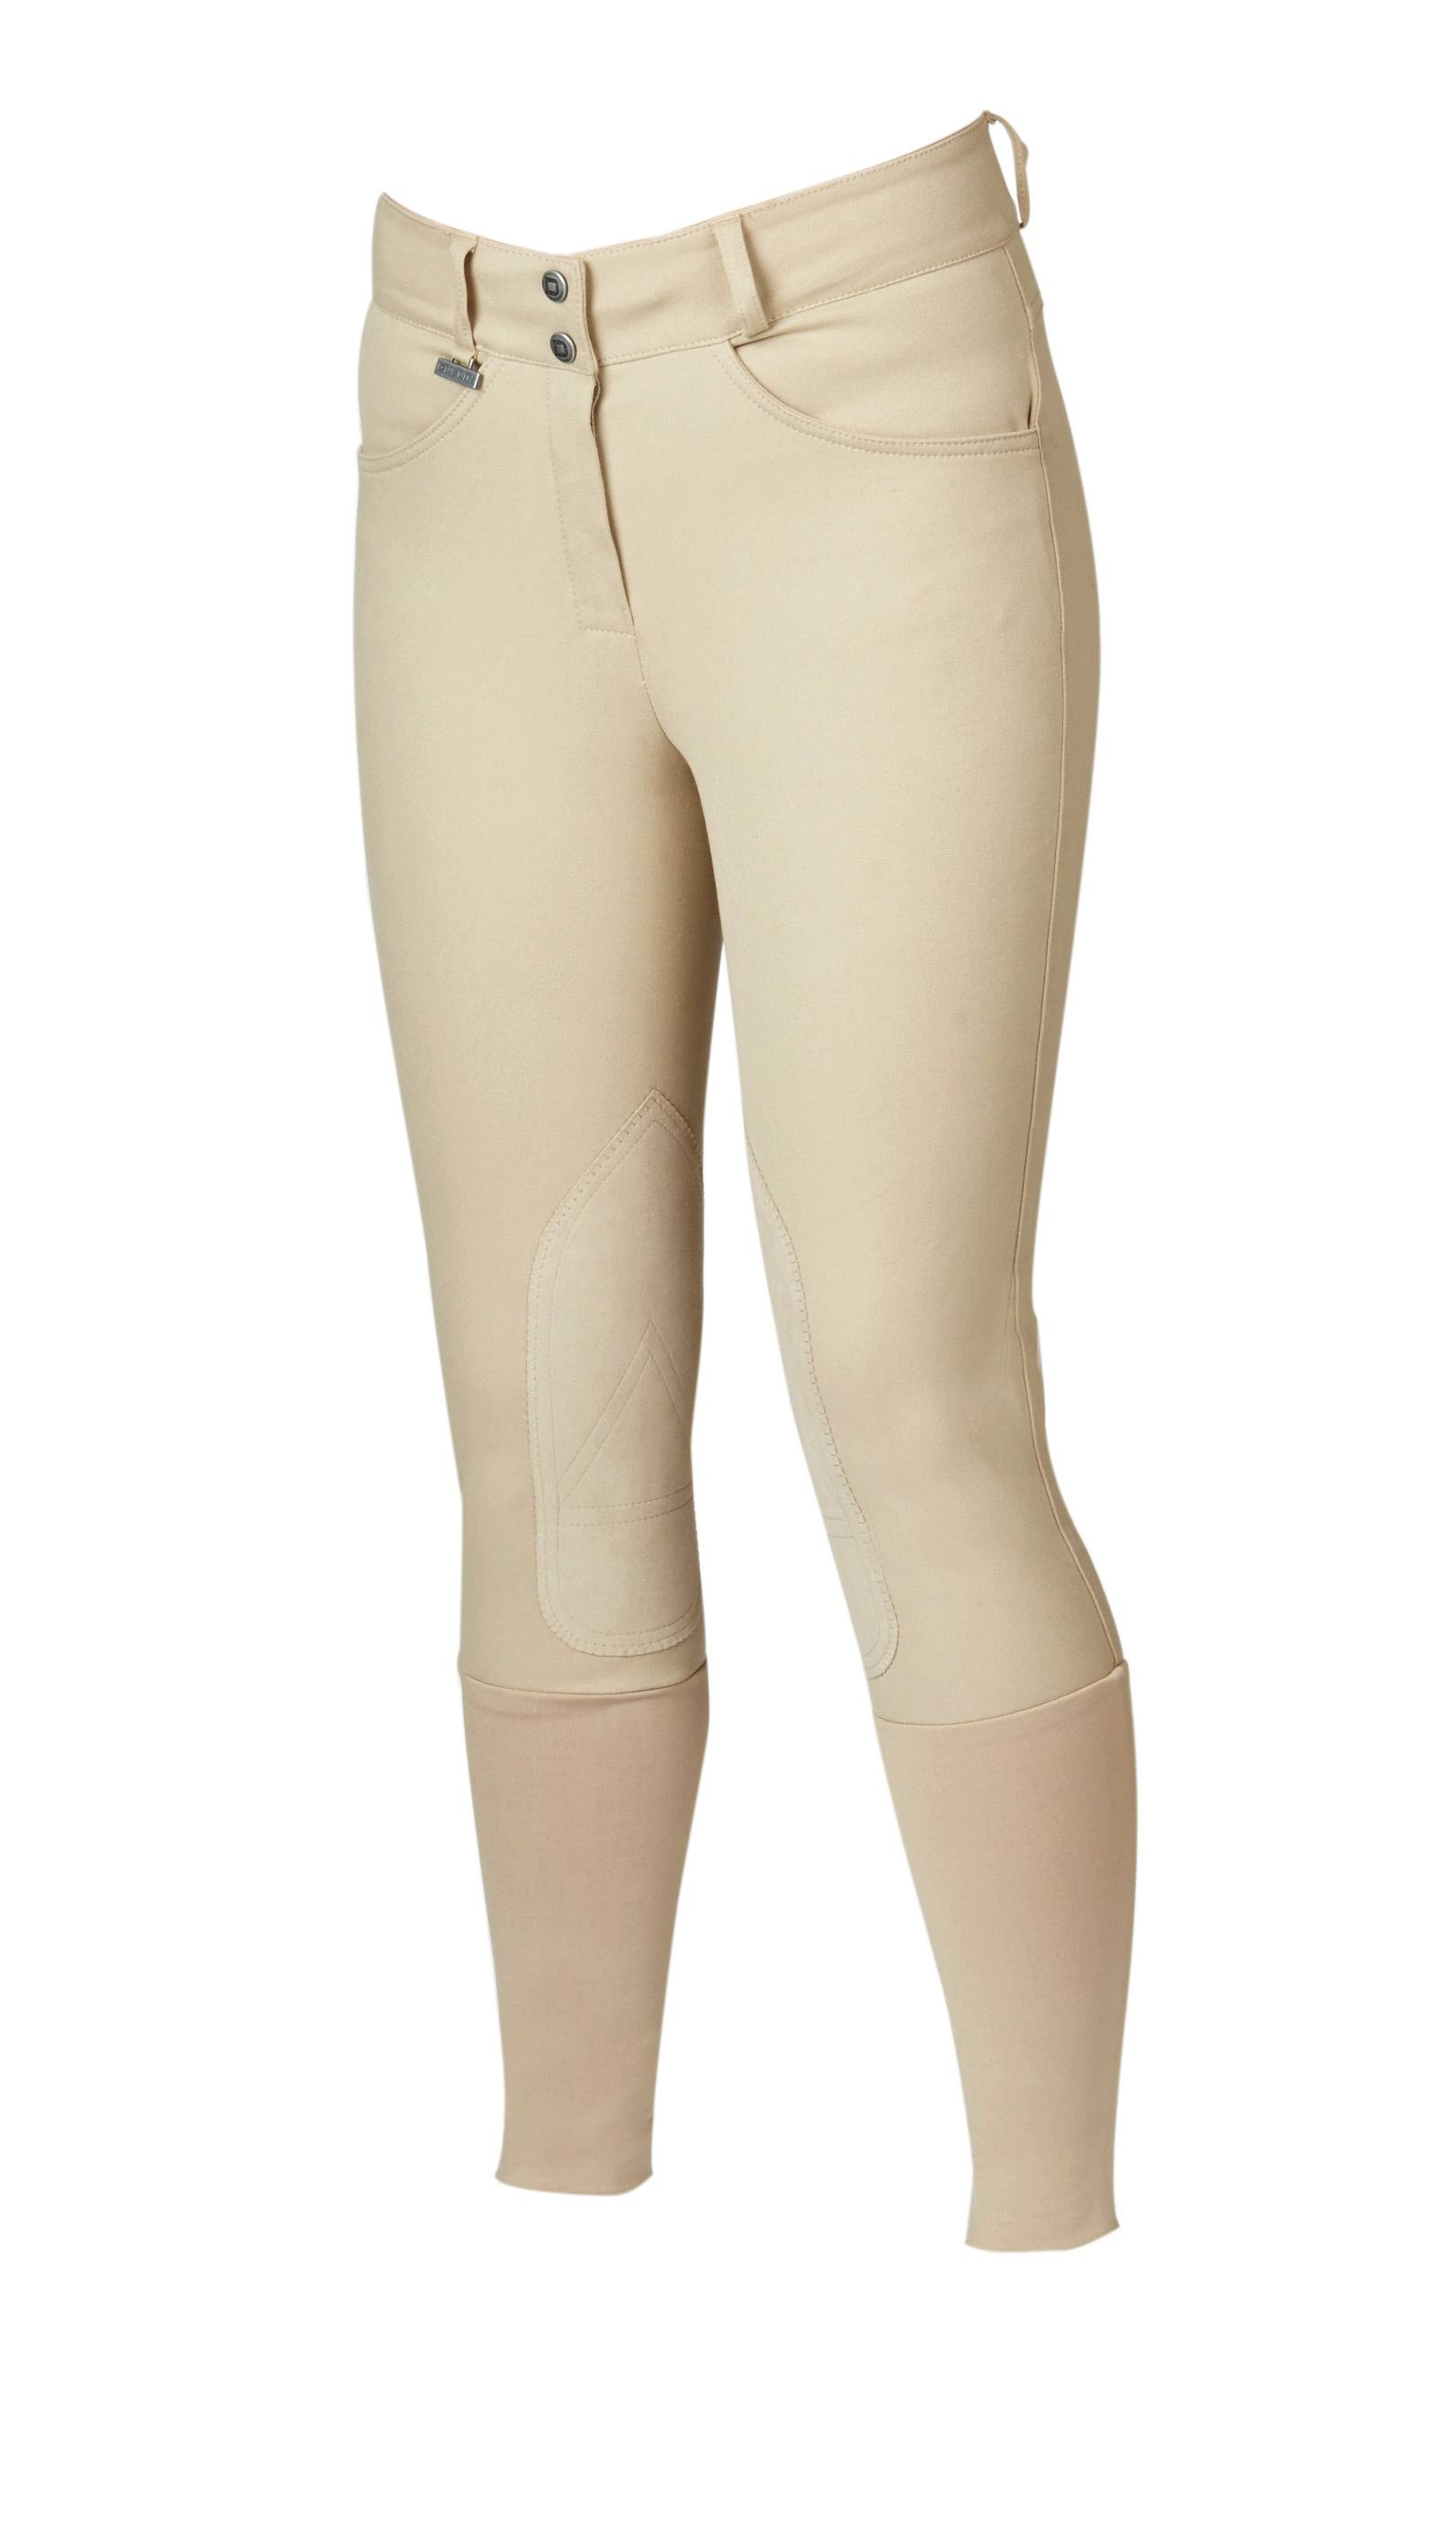 Dublin Active Slender Breeches - Ladies, EuroSeat